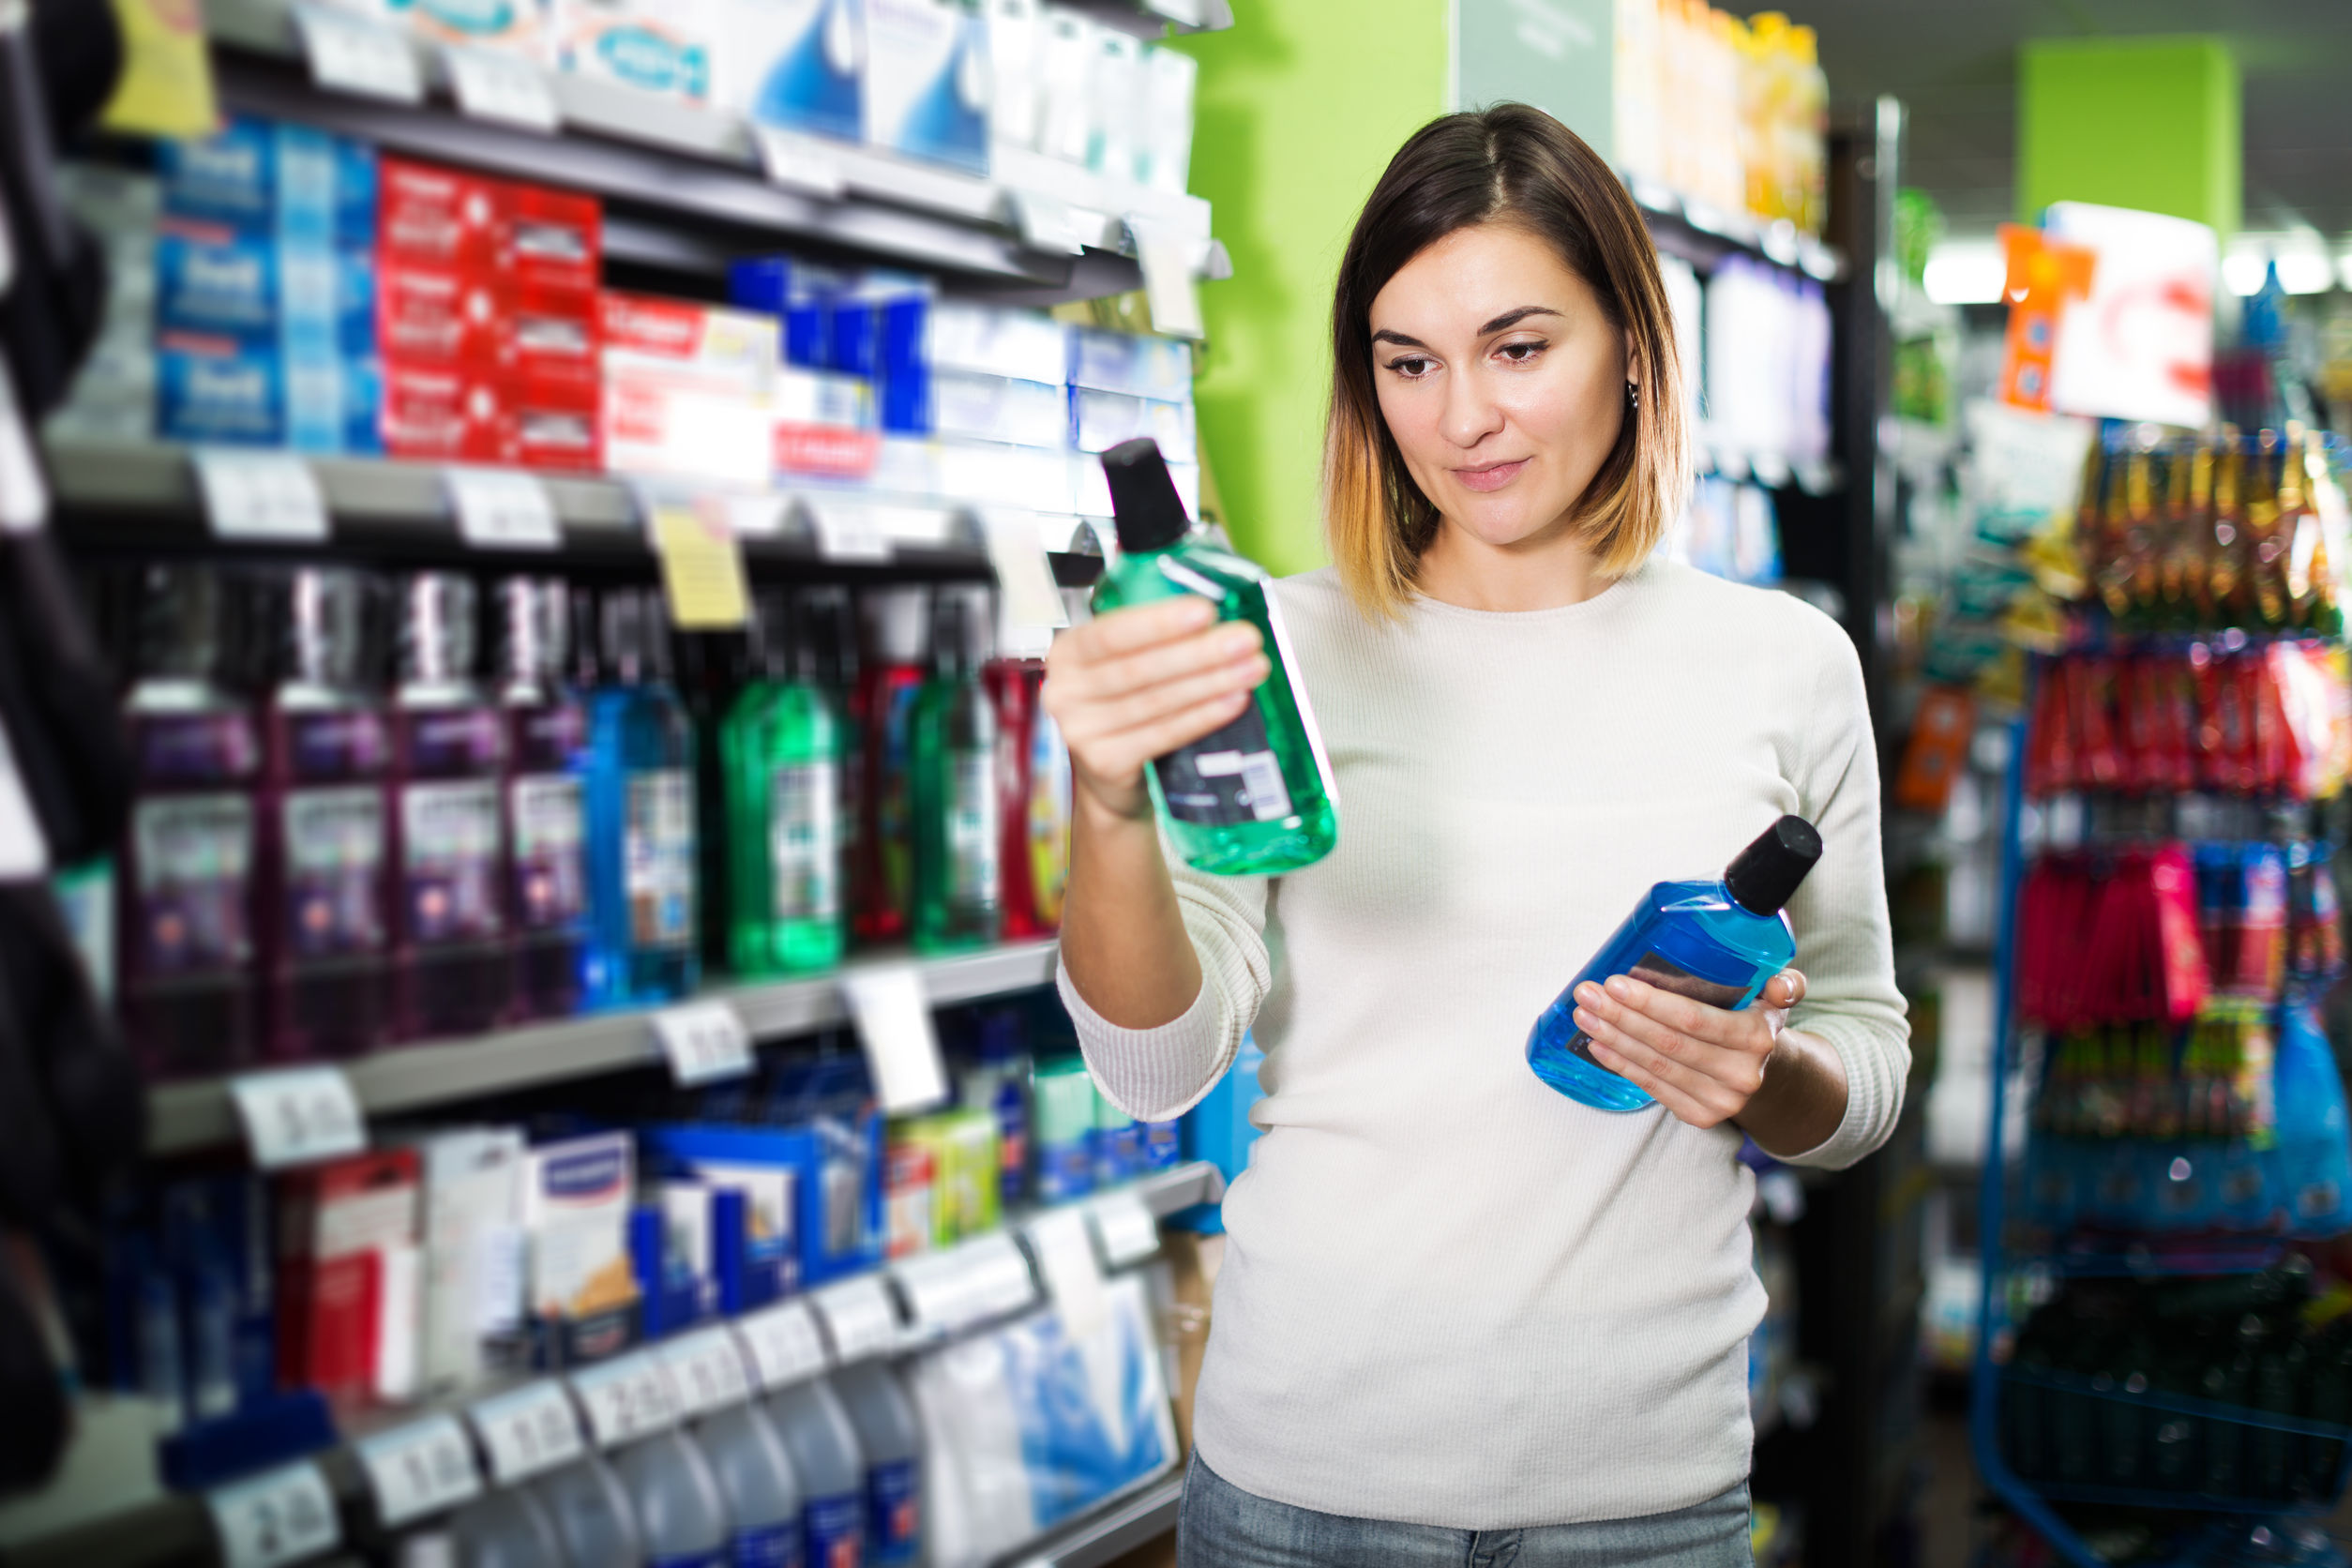 What mouthwash is best?